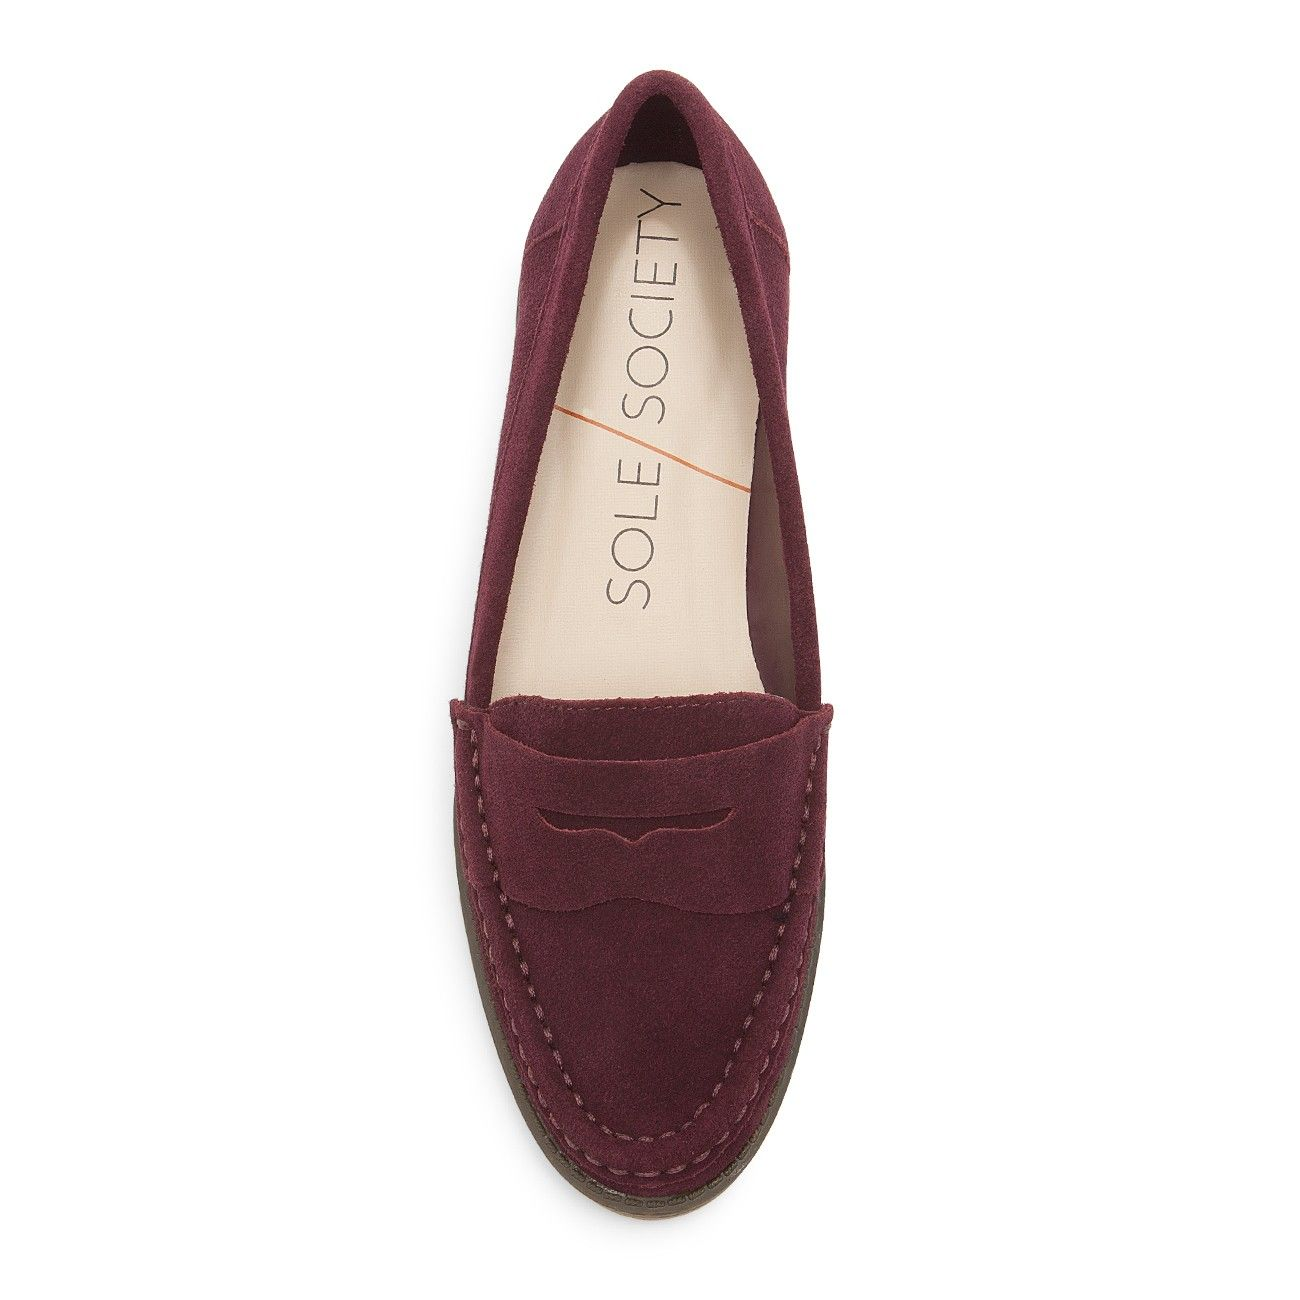 d61b54c9fab Sole Society - Women s Shoes at Surprisingly Affordable Prices